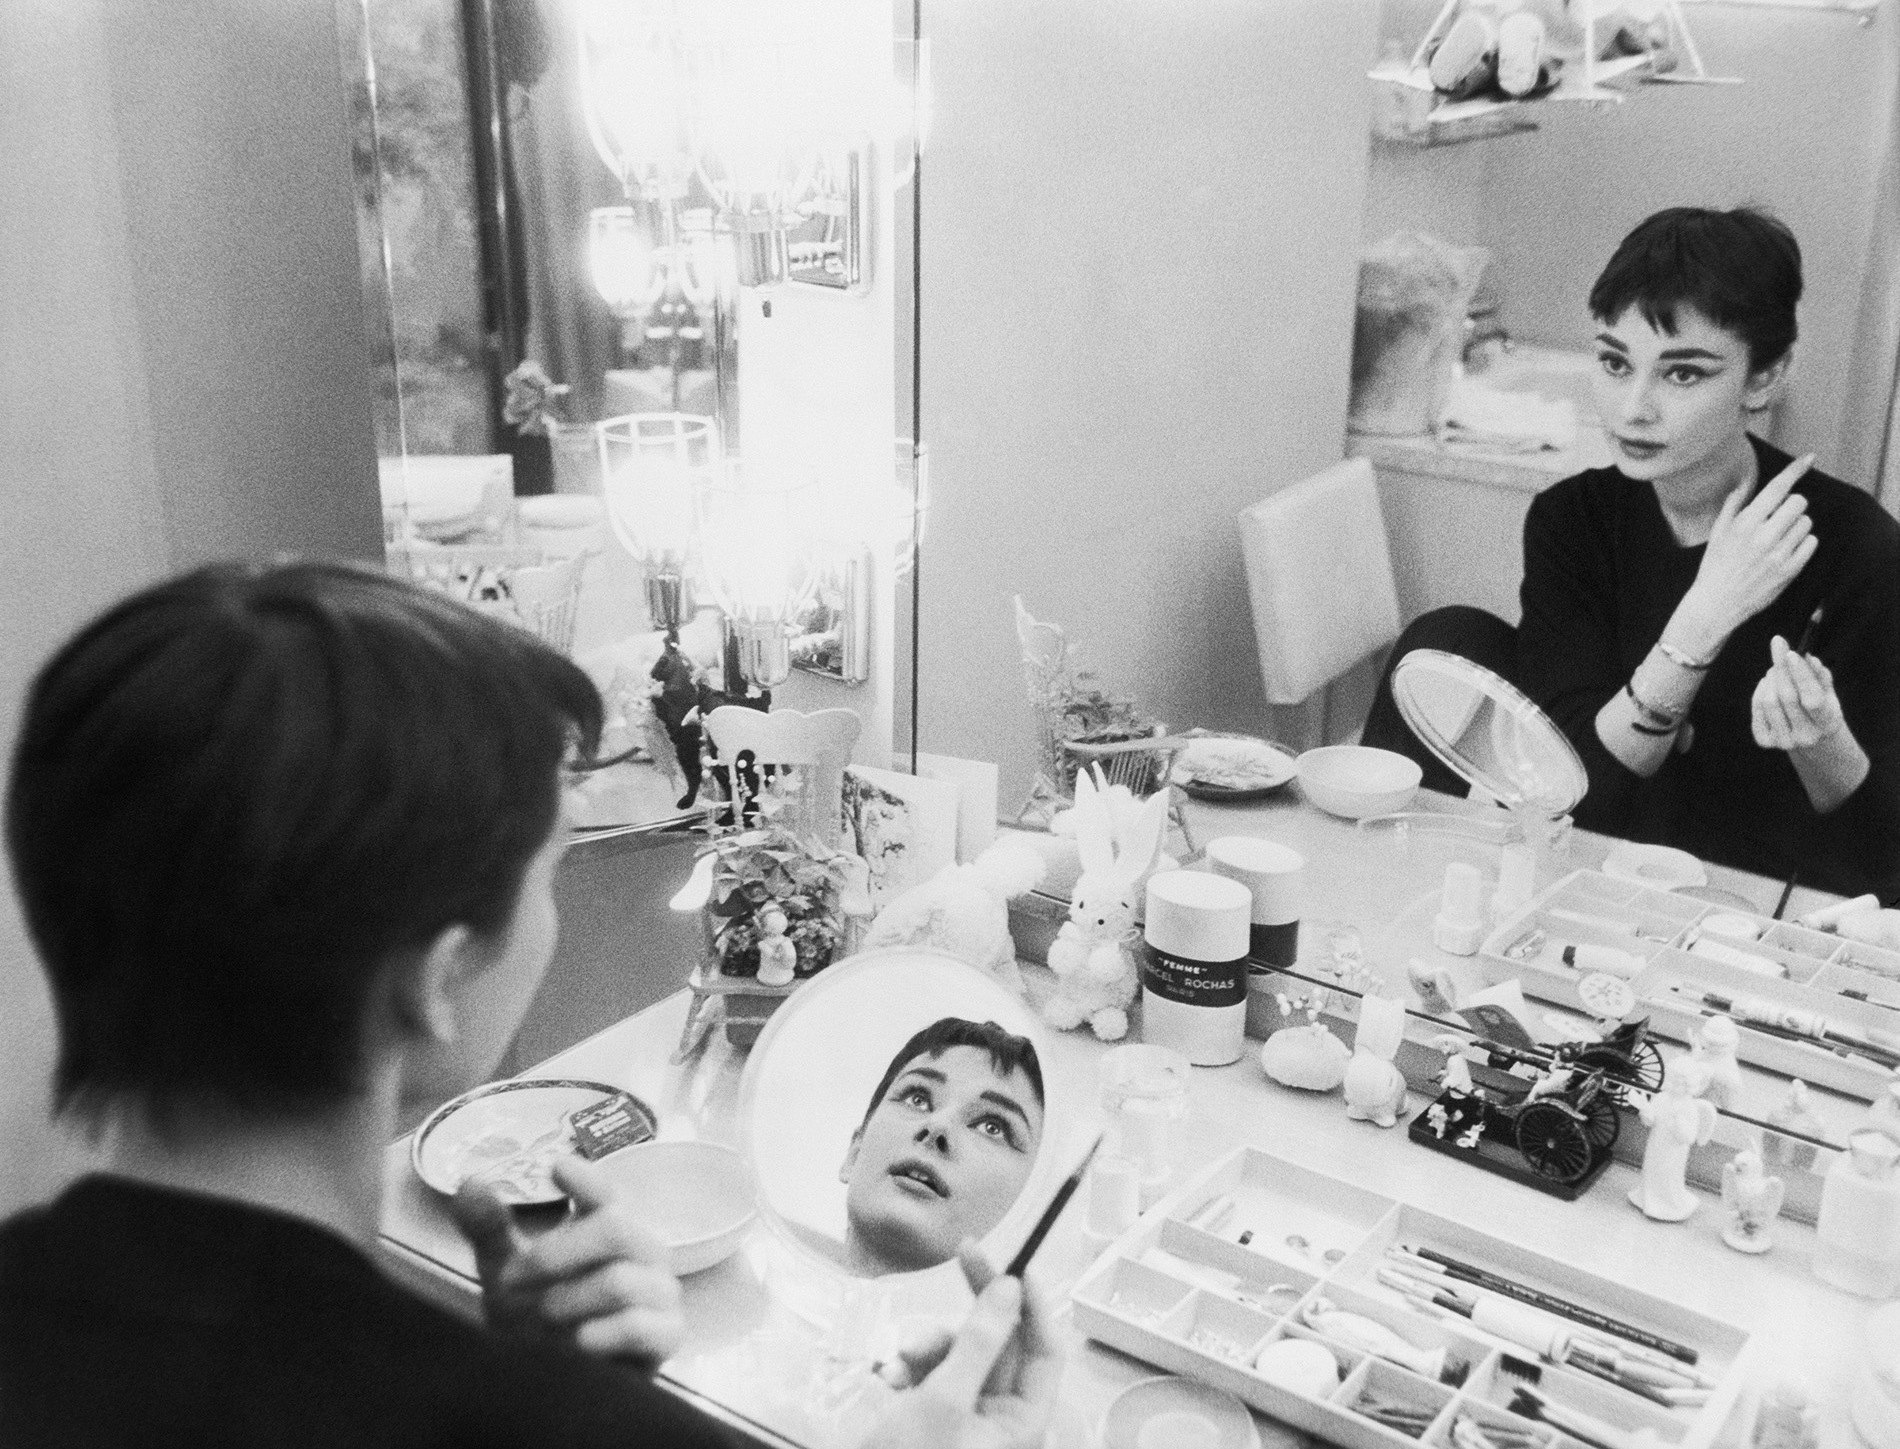 audrey-hepburn-is-her-dressing-room-during-the-filming-of-22sabrina22-1954-c2a9-mark-shaw.jpg